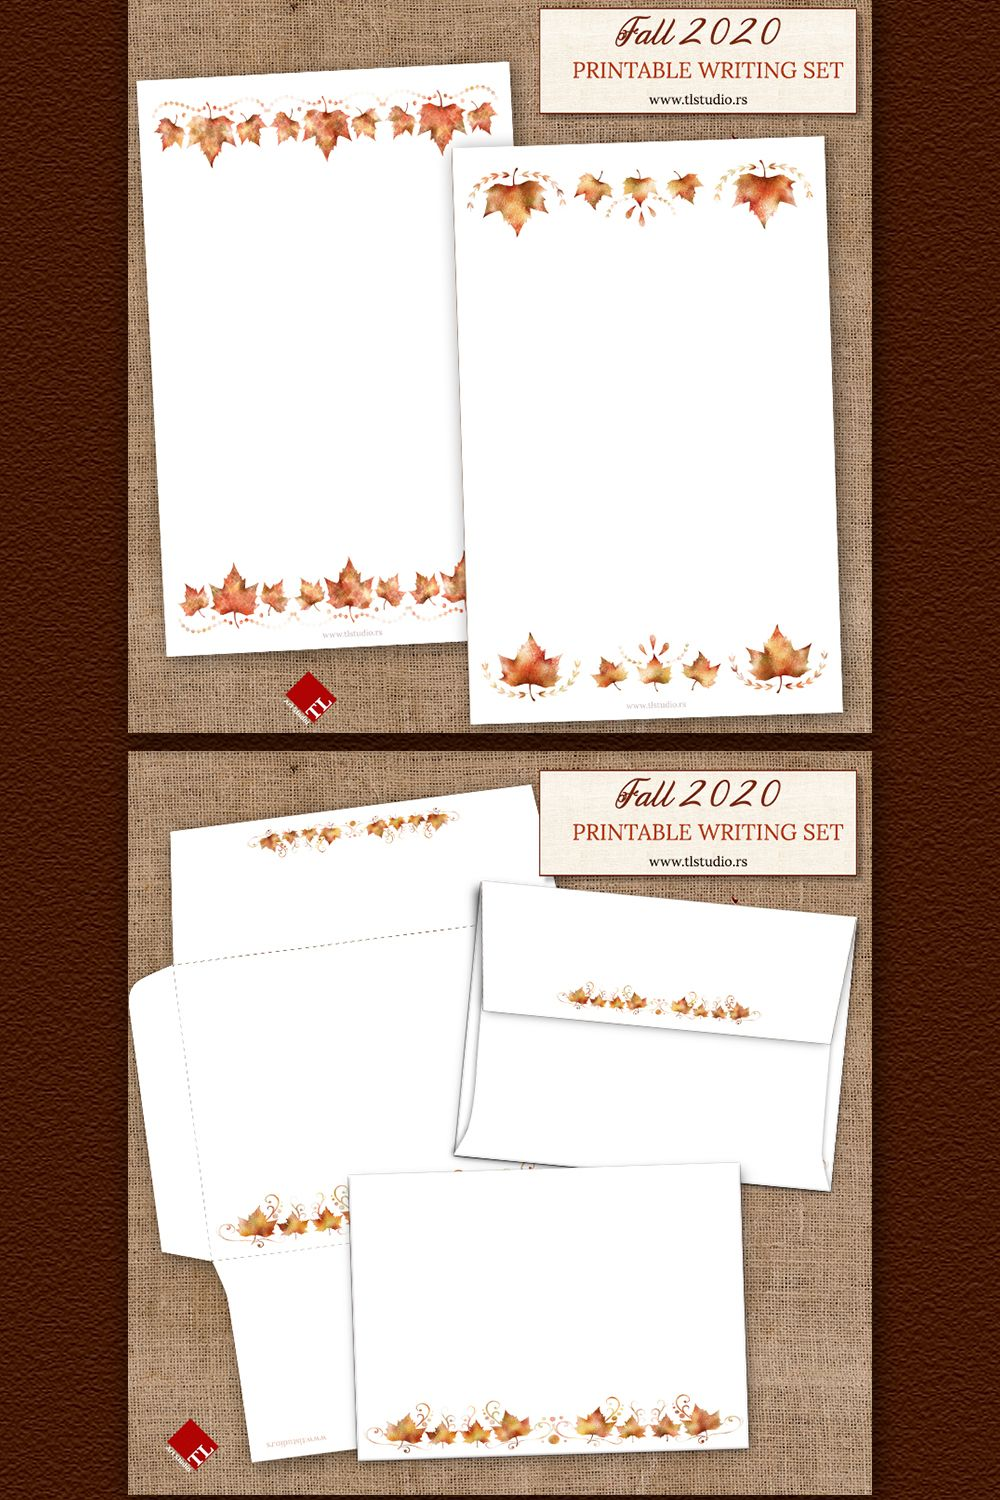 Printable Fall Stationery Writing Set 2 In 2020 Printable Stationery Stationery Set Digital Scrapbook Paper